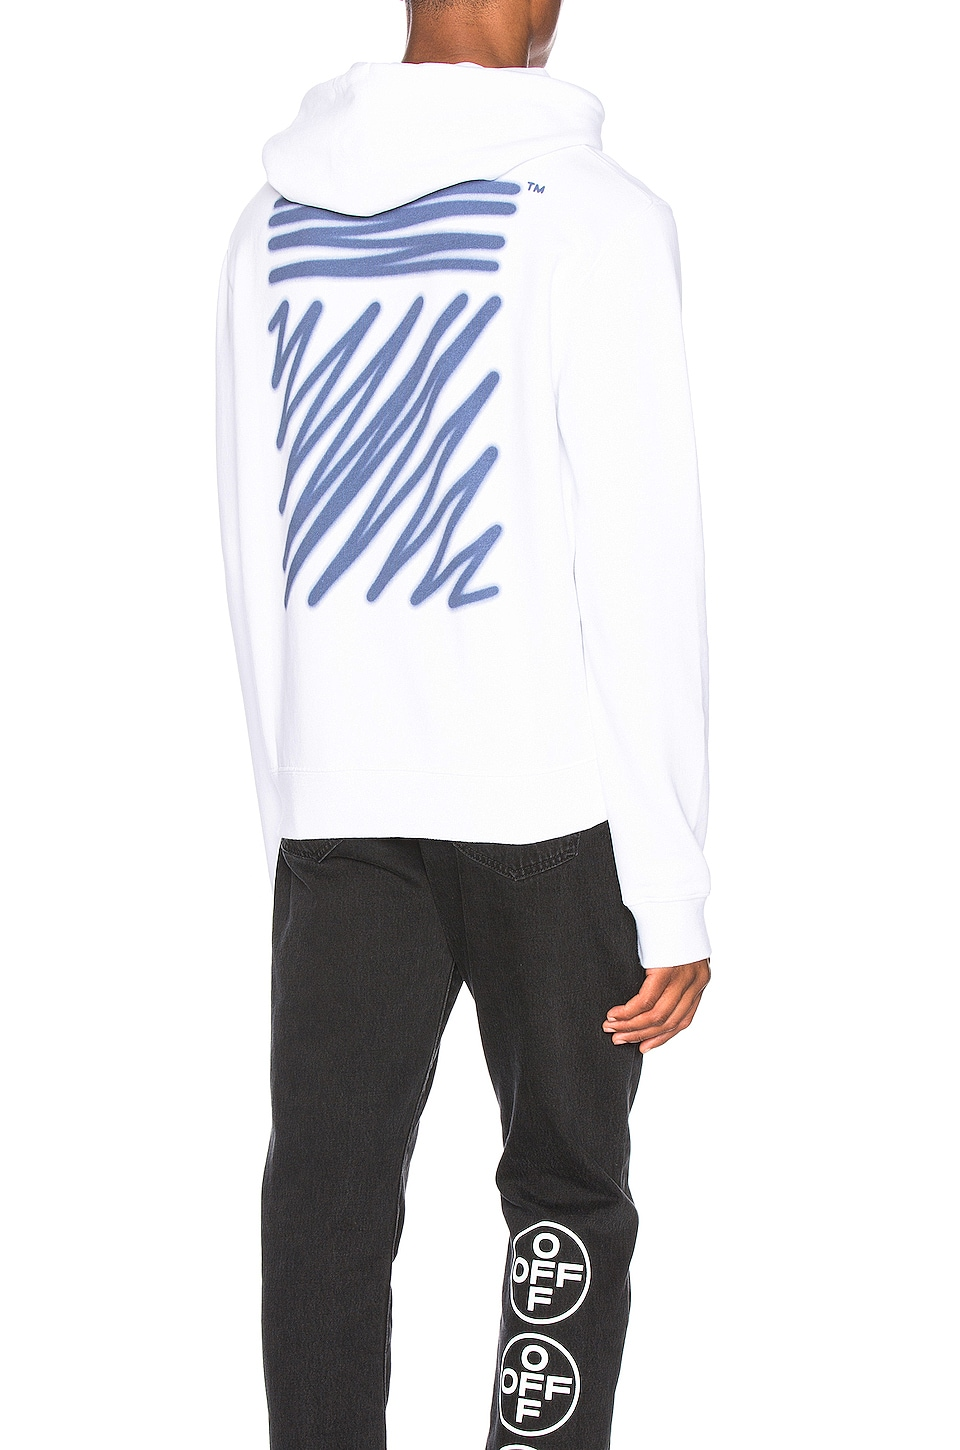 OFF-WHITE EXCLUSIVE Hooded Sweatshirt in White